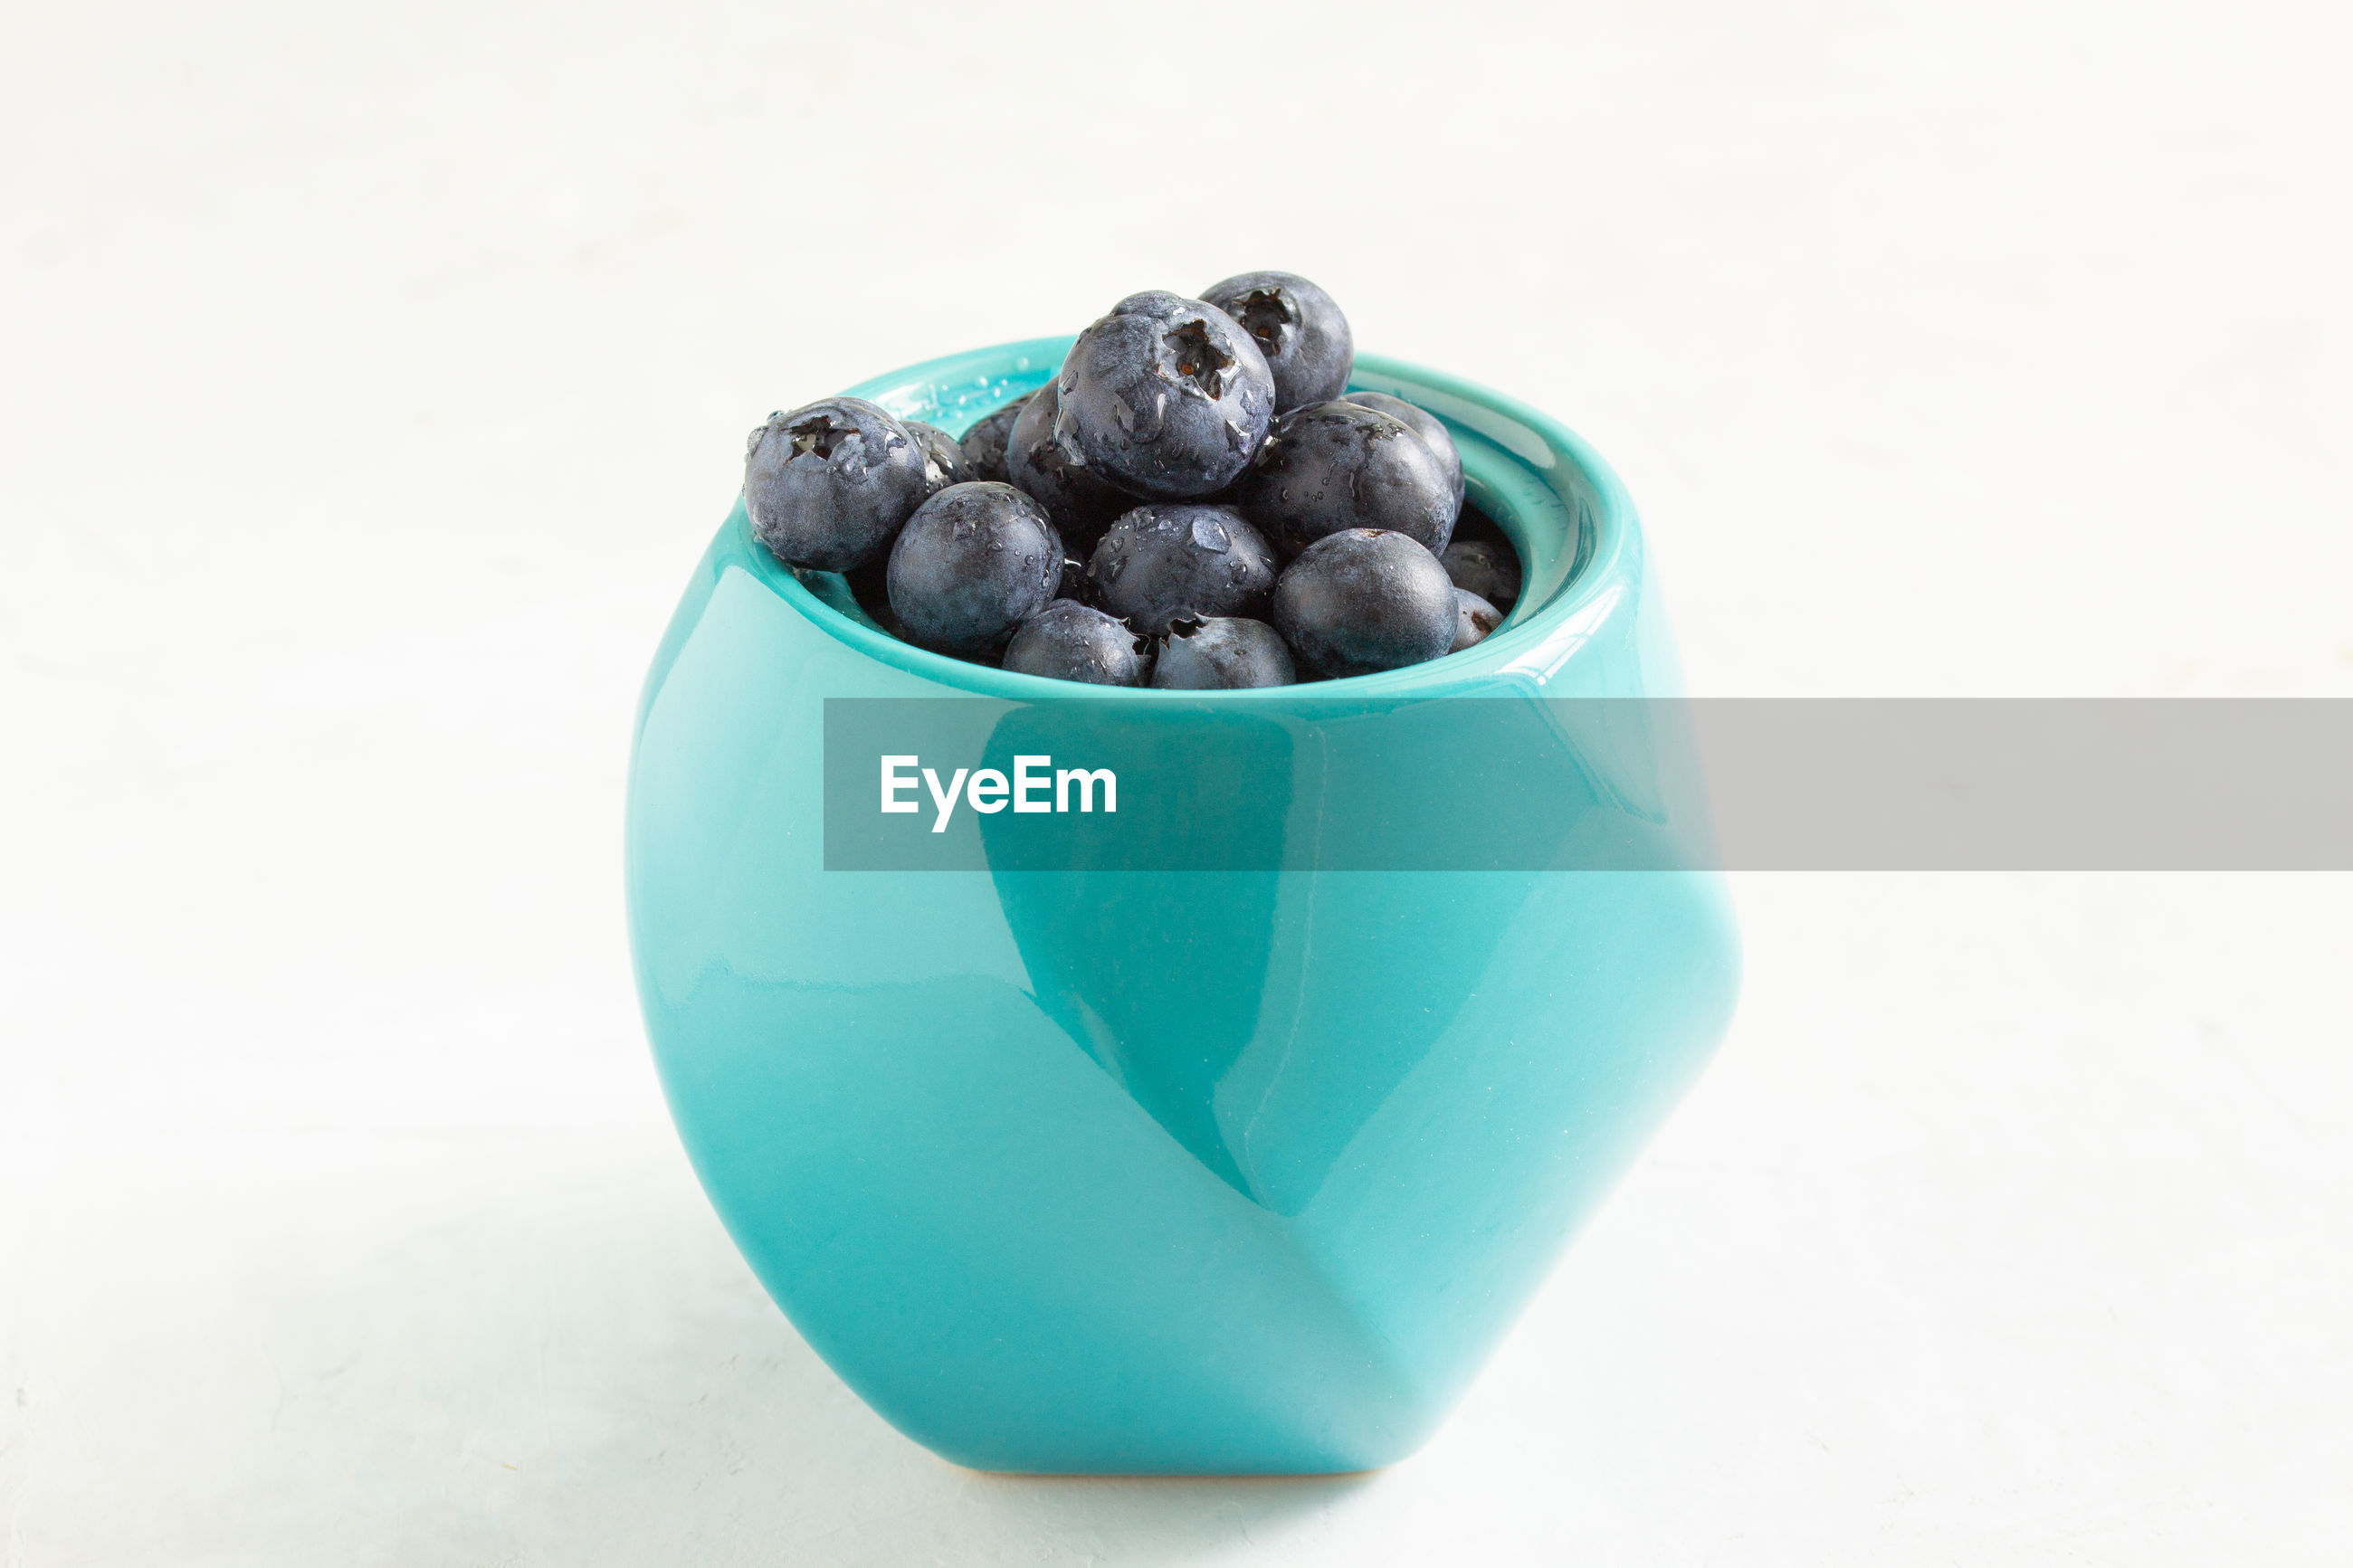 Blueberries in a turquoise pot on a light gray table. pot in the center of the image